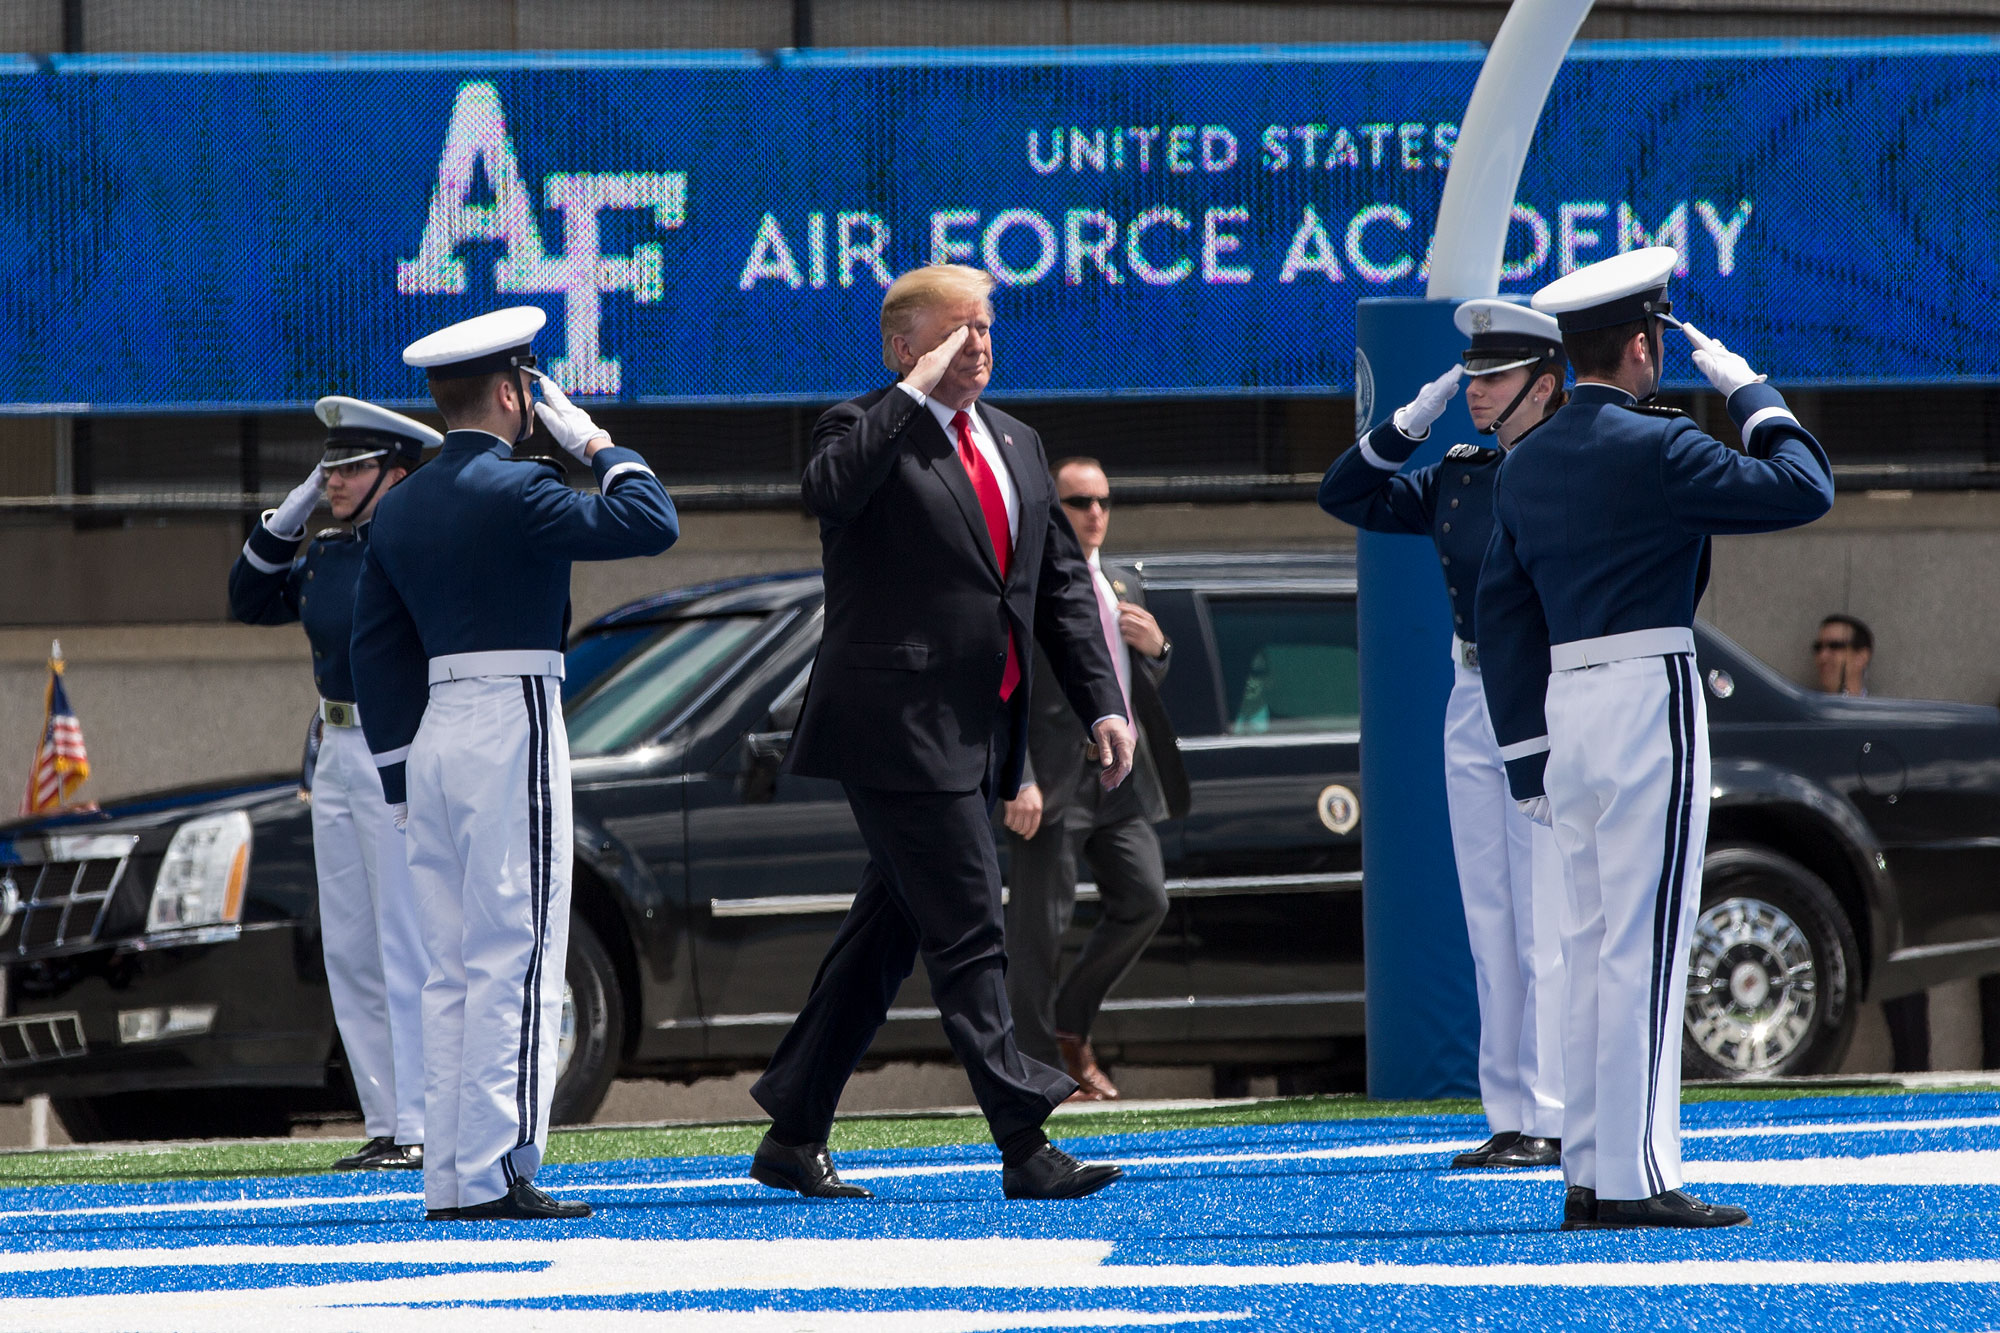 <p>President Donald Trump enters Falcon Stadium for U.S. Air Force Academy graduation on Thu., May 30, 2019.</p>